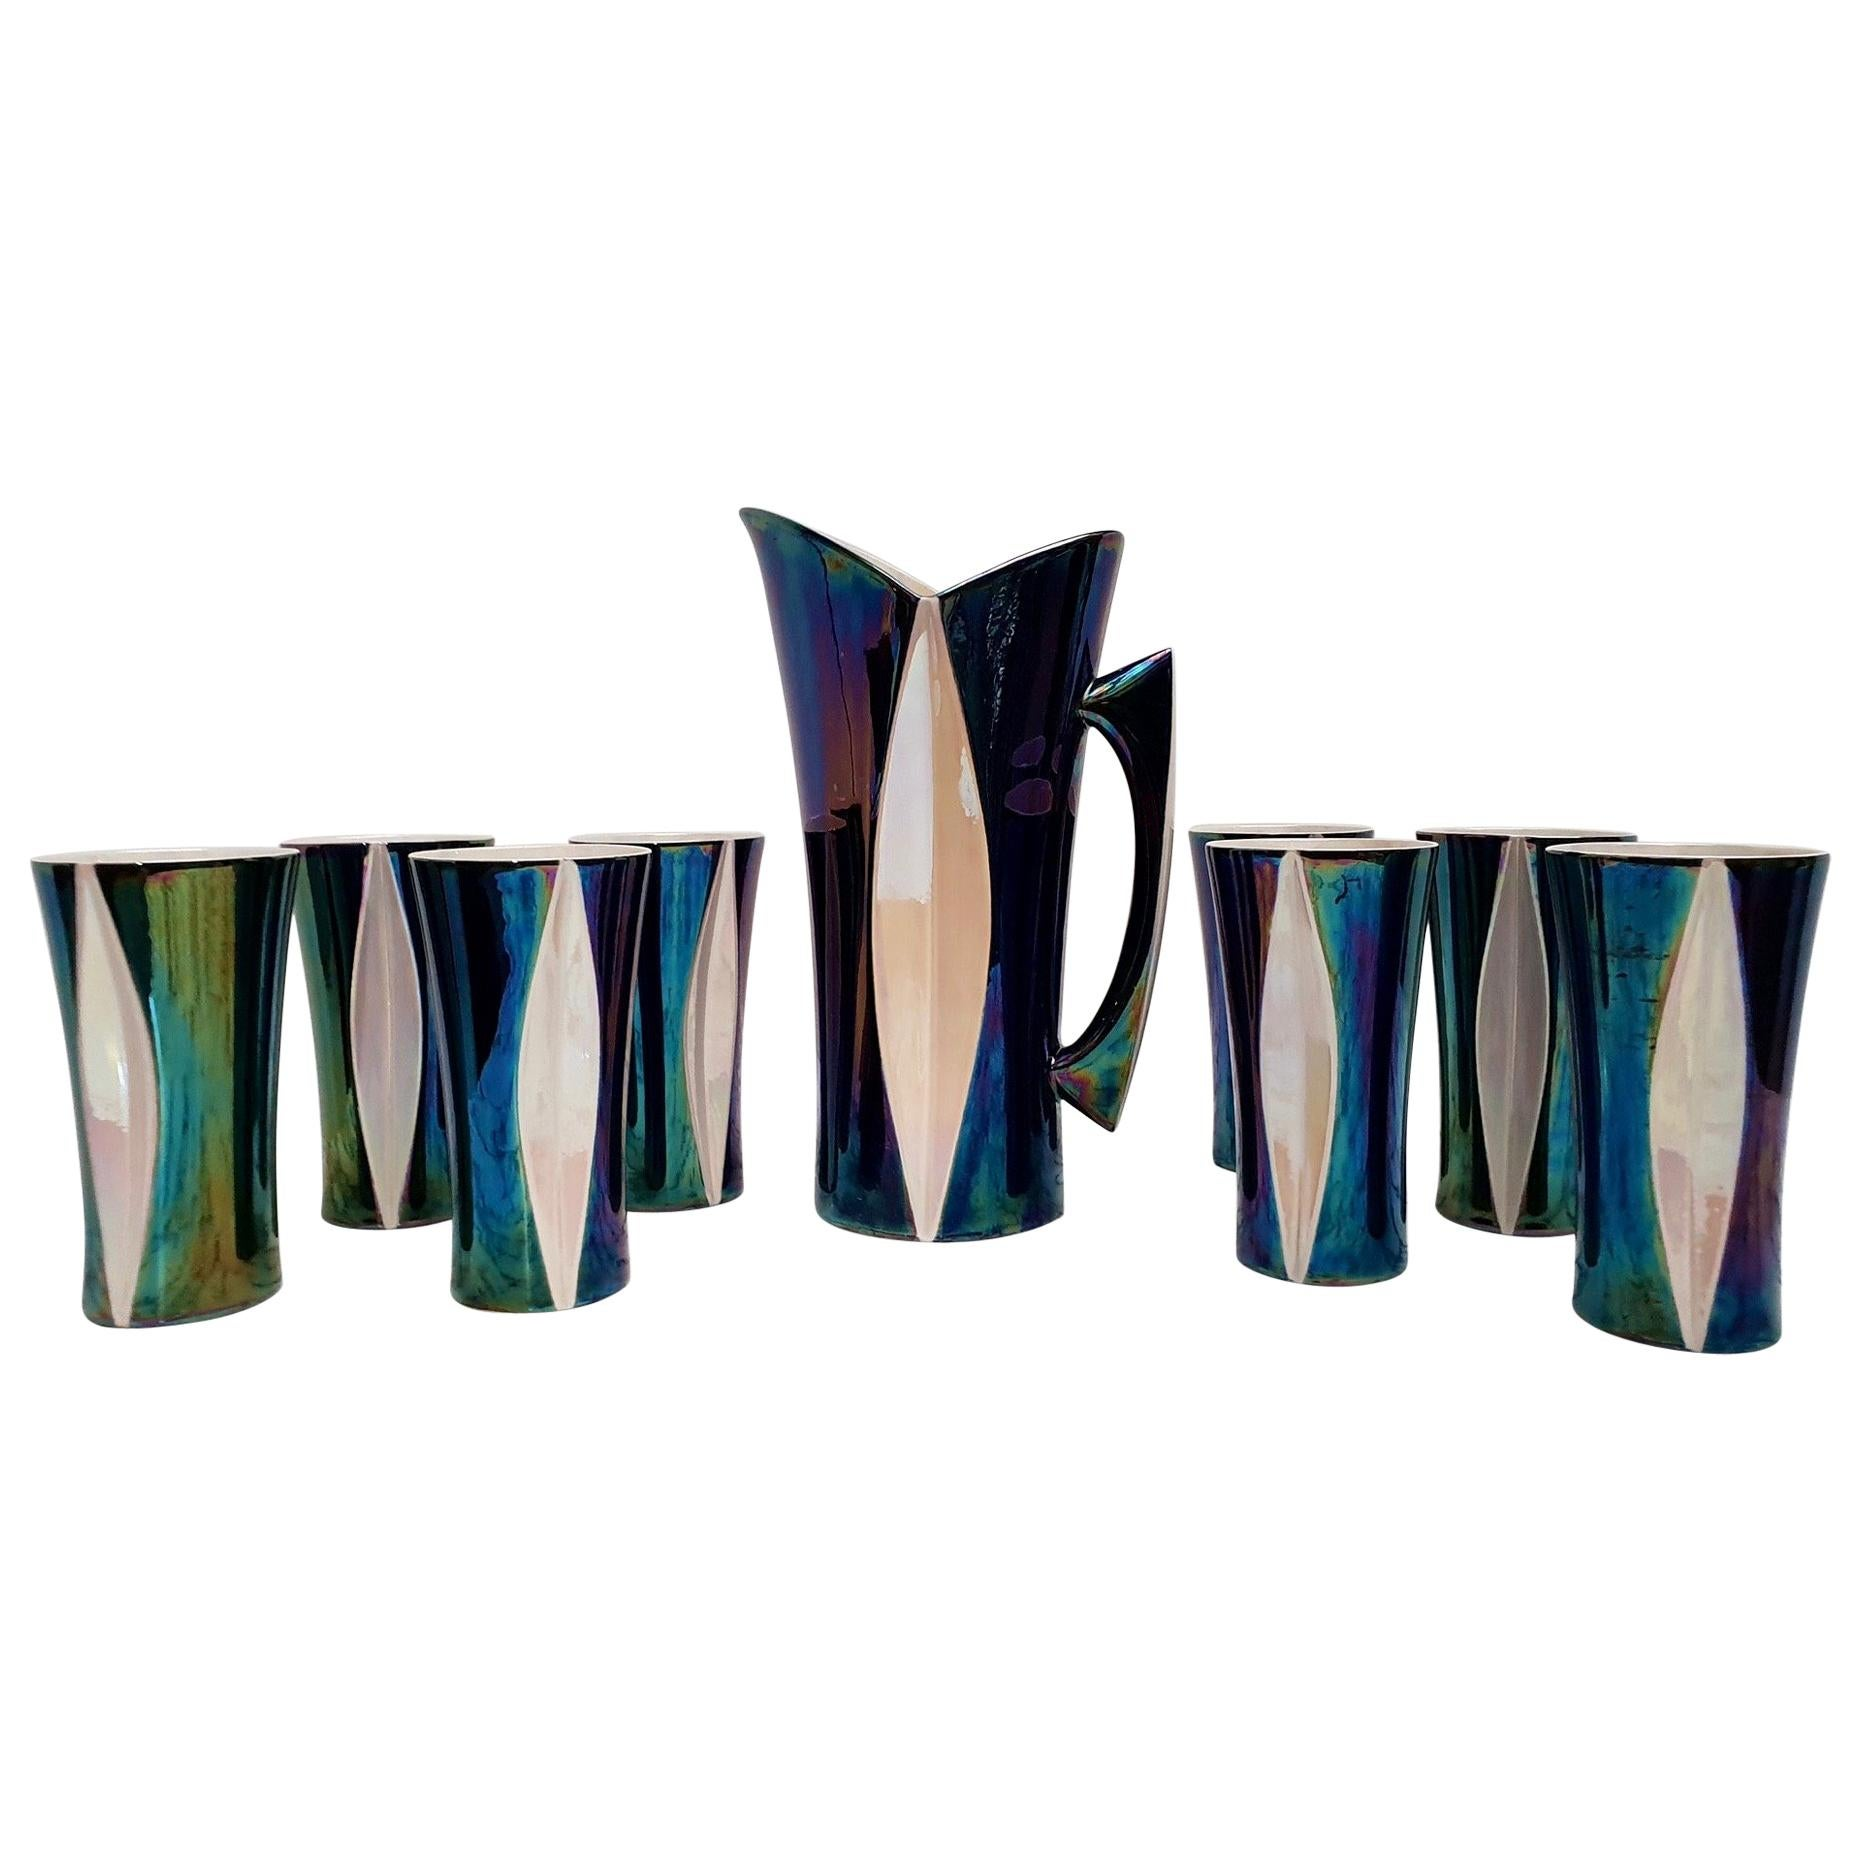 Mid-20th Century Iridescent Ceramic Drinks Set of 9 Made in France, 1970s